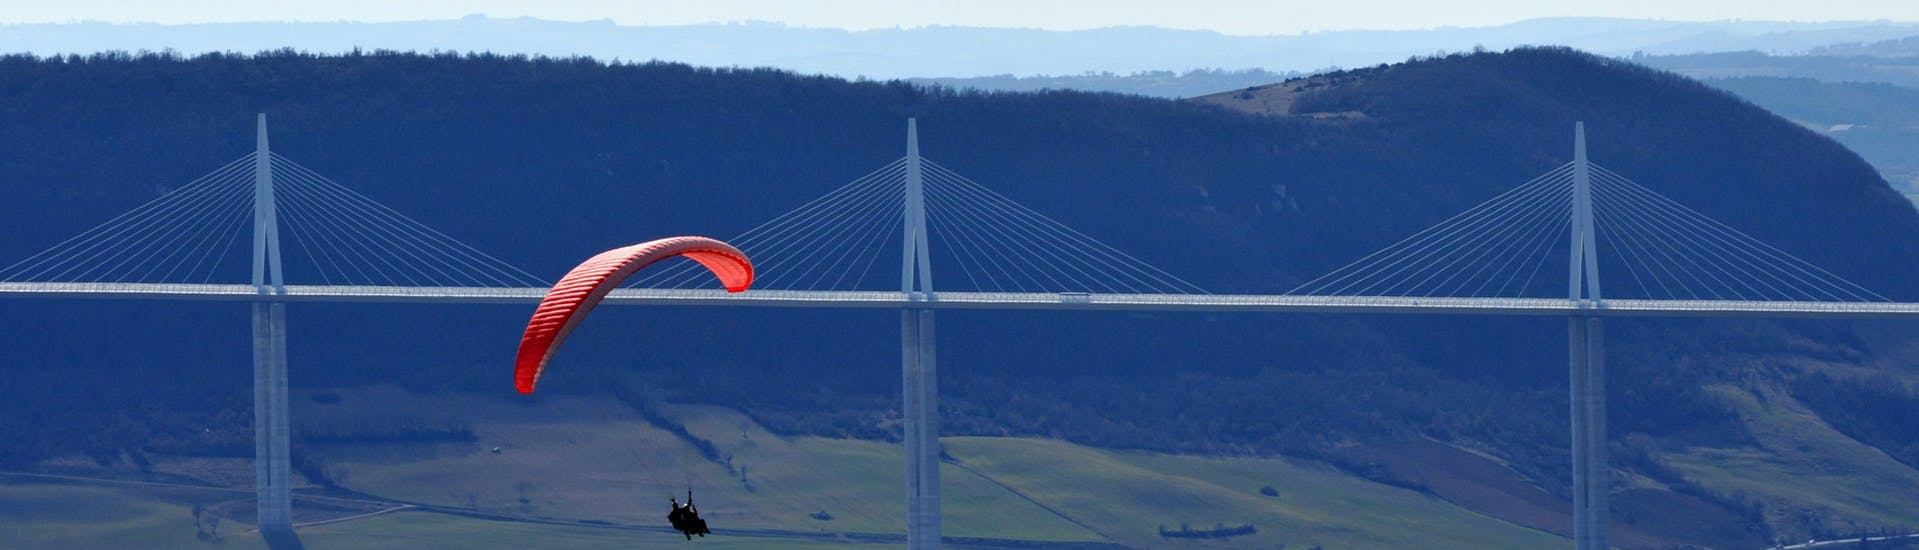 A paragliding pilot from Air Magic Parapente is doing a Tandem Paragliding Flight in front of the Millau Viaduct.